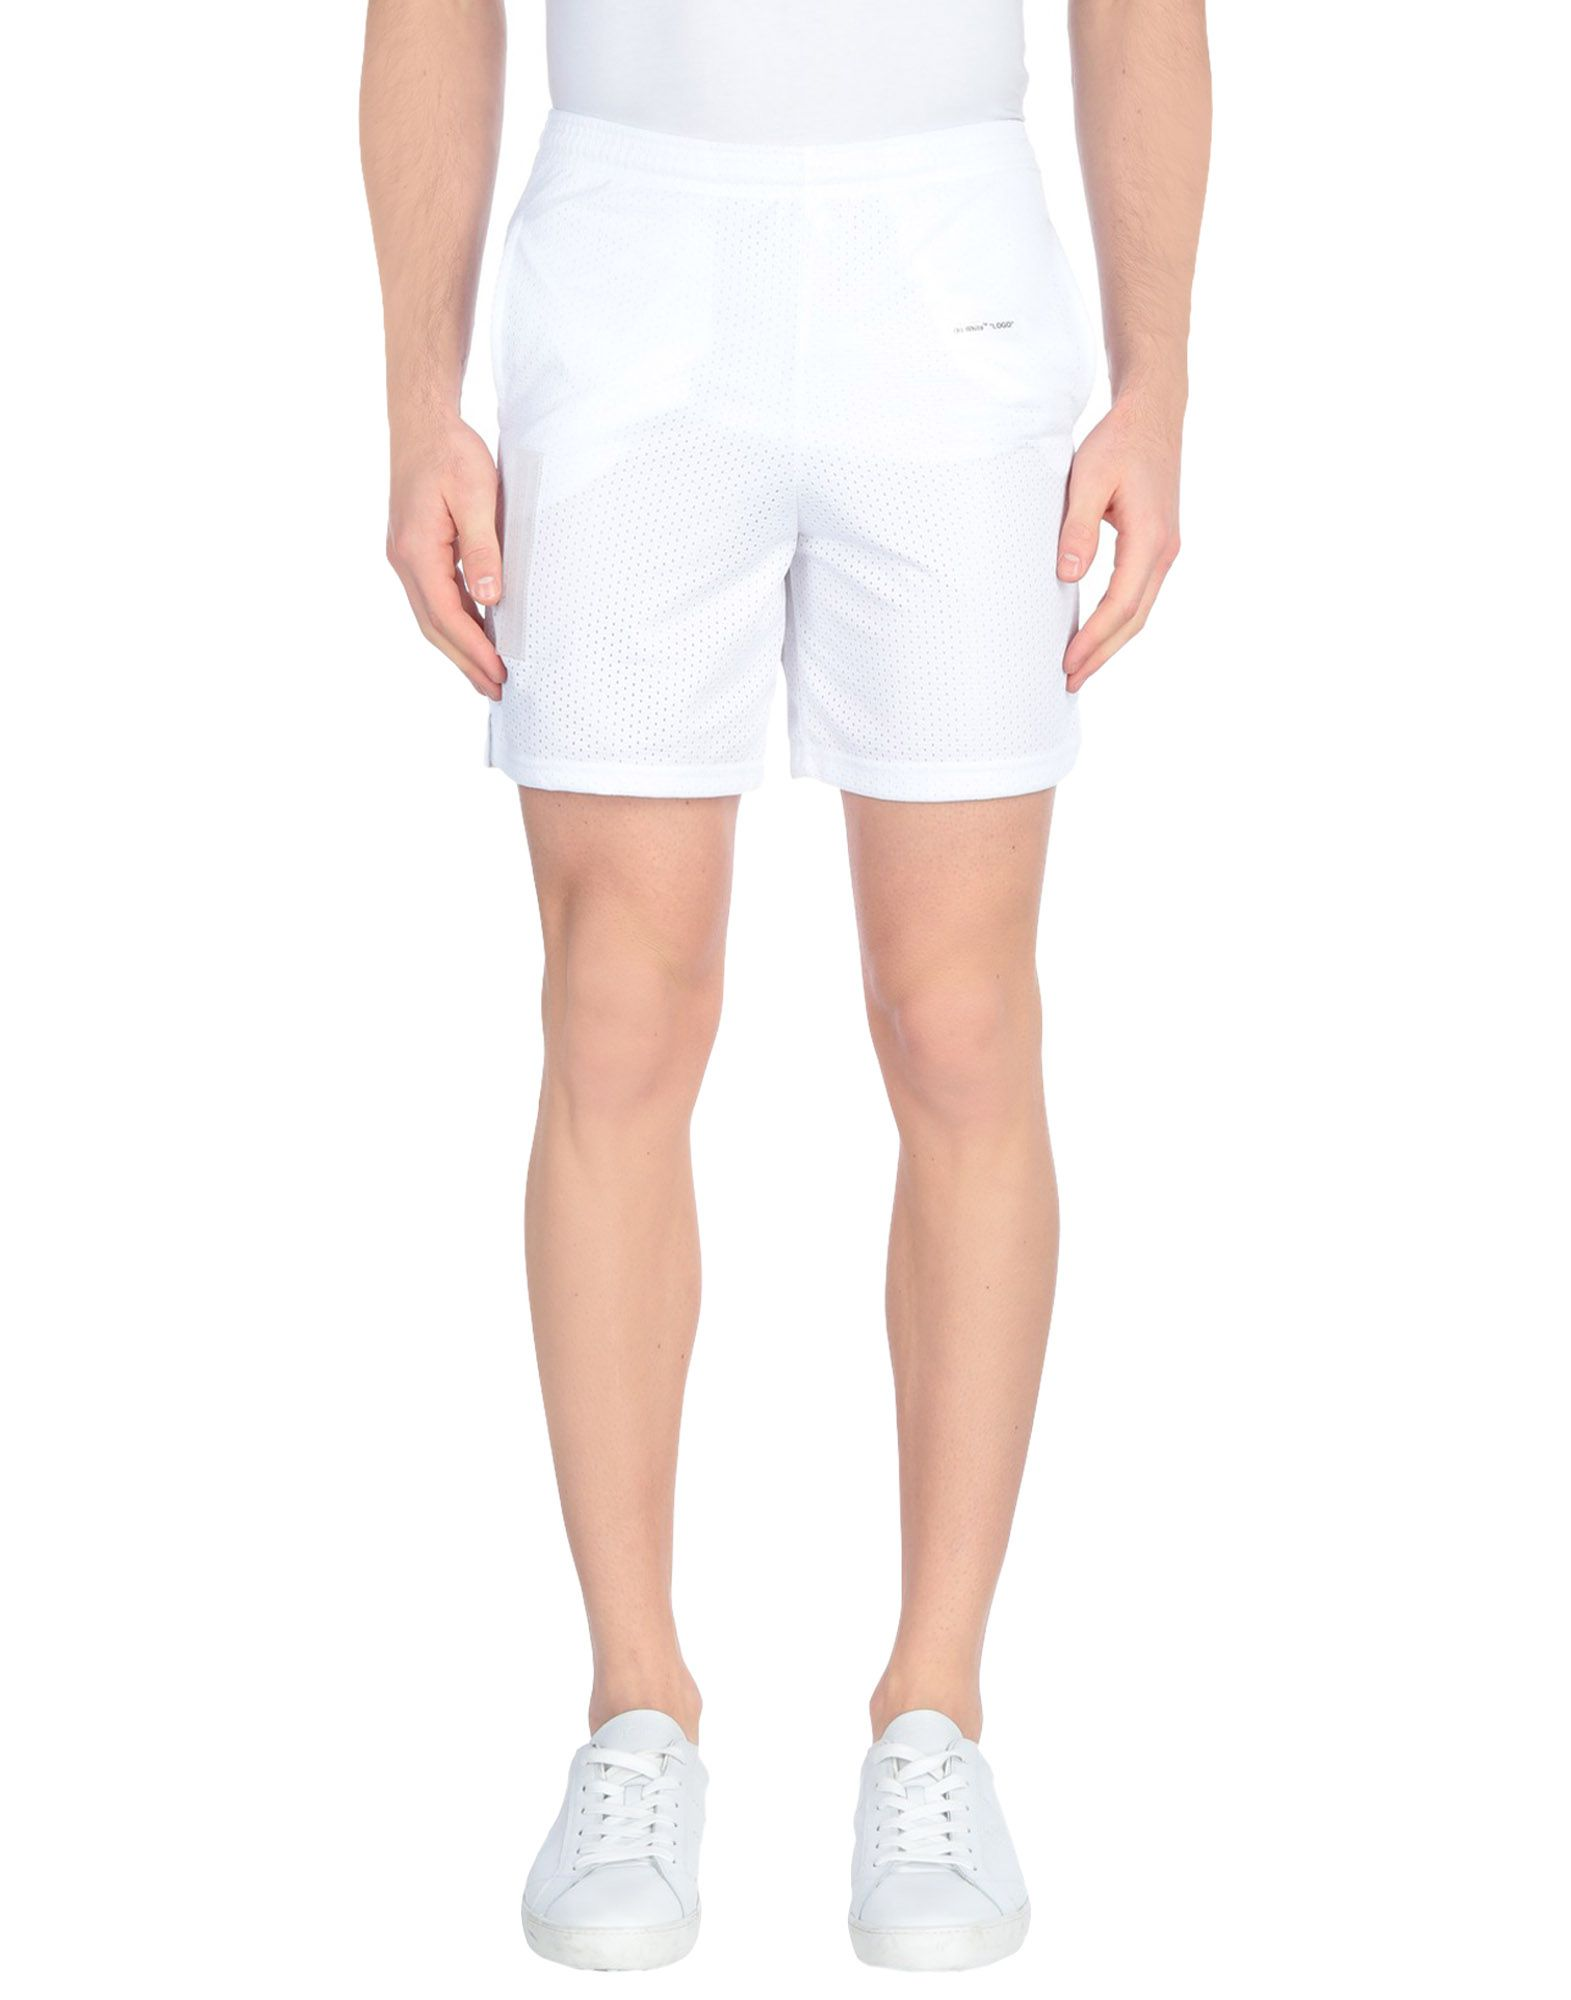 OFF-WHITE™ Bermudas. jersey, openwork, logo, basic solid color, high waisted, comfort fit, drawstring closure, multipockets, fully lined, sporty. 100% Polyester